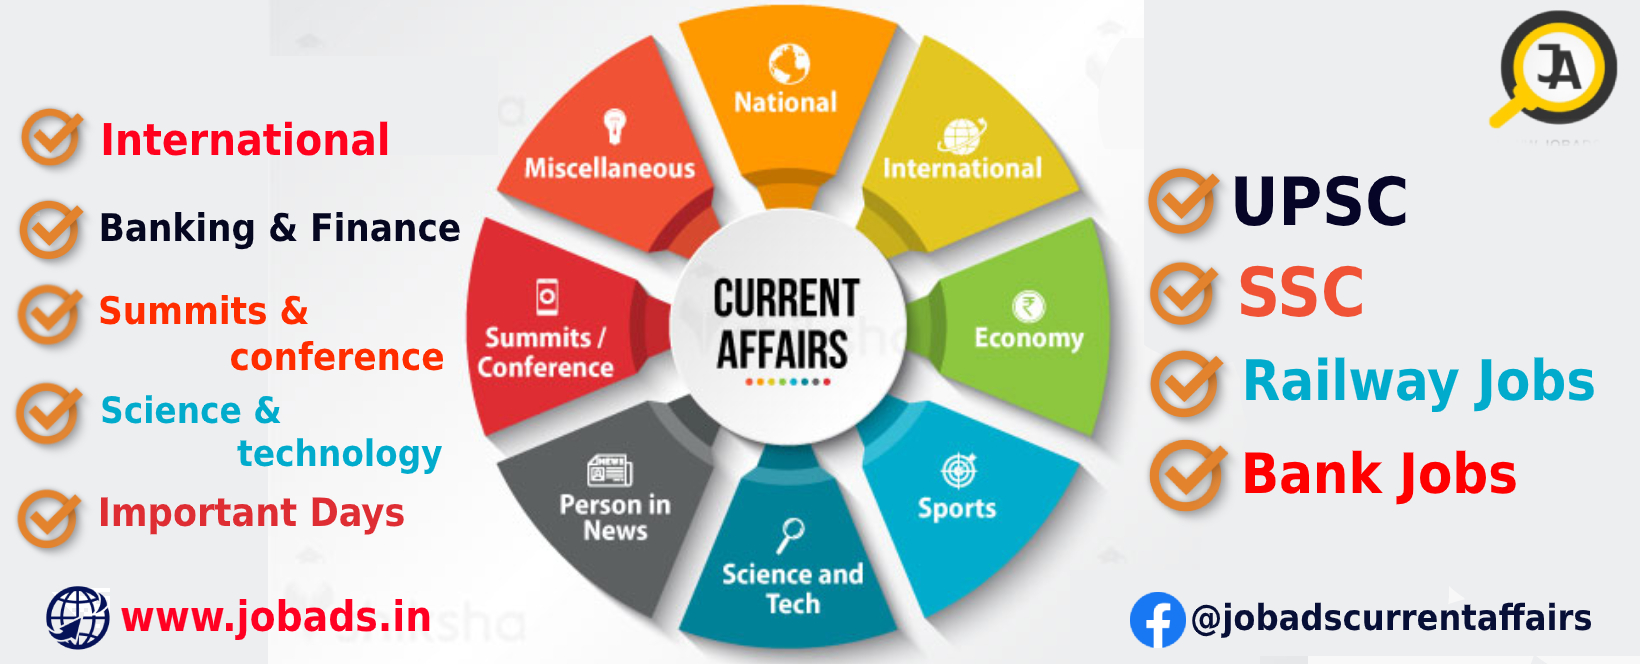 March 2021 Current Affairs